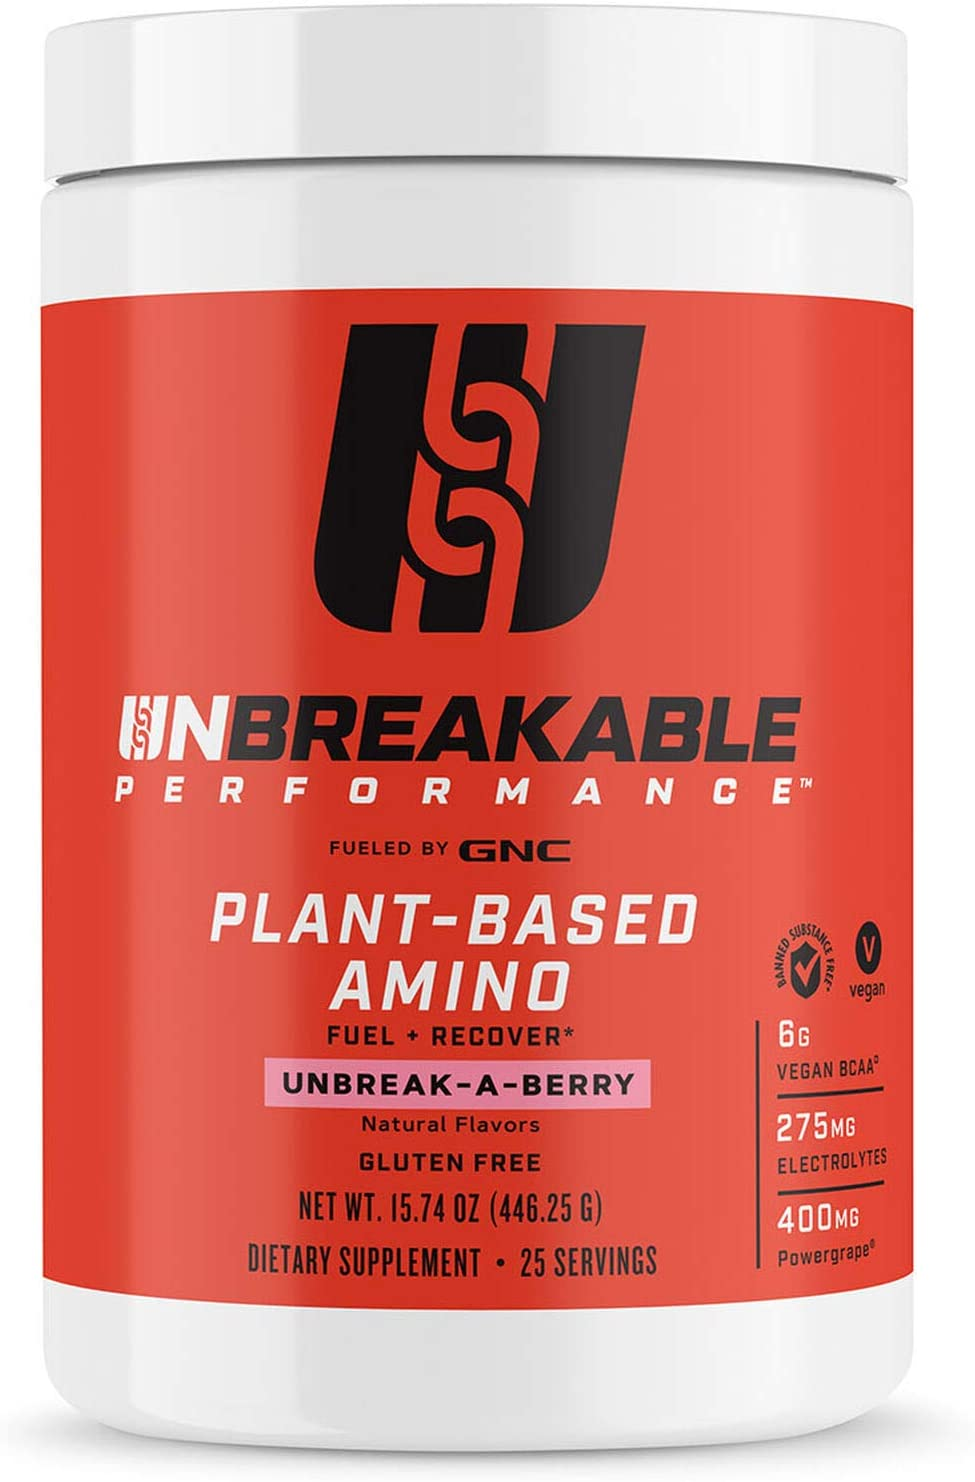 Unbreakable Performance Plant-Based Amino - Unbreak A Berry